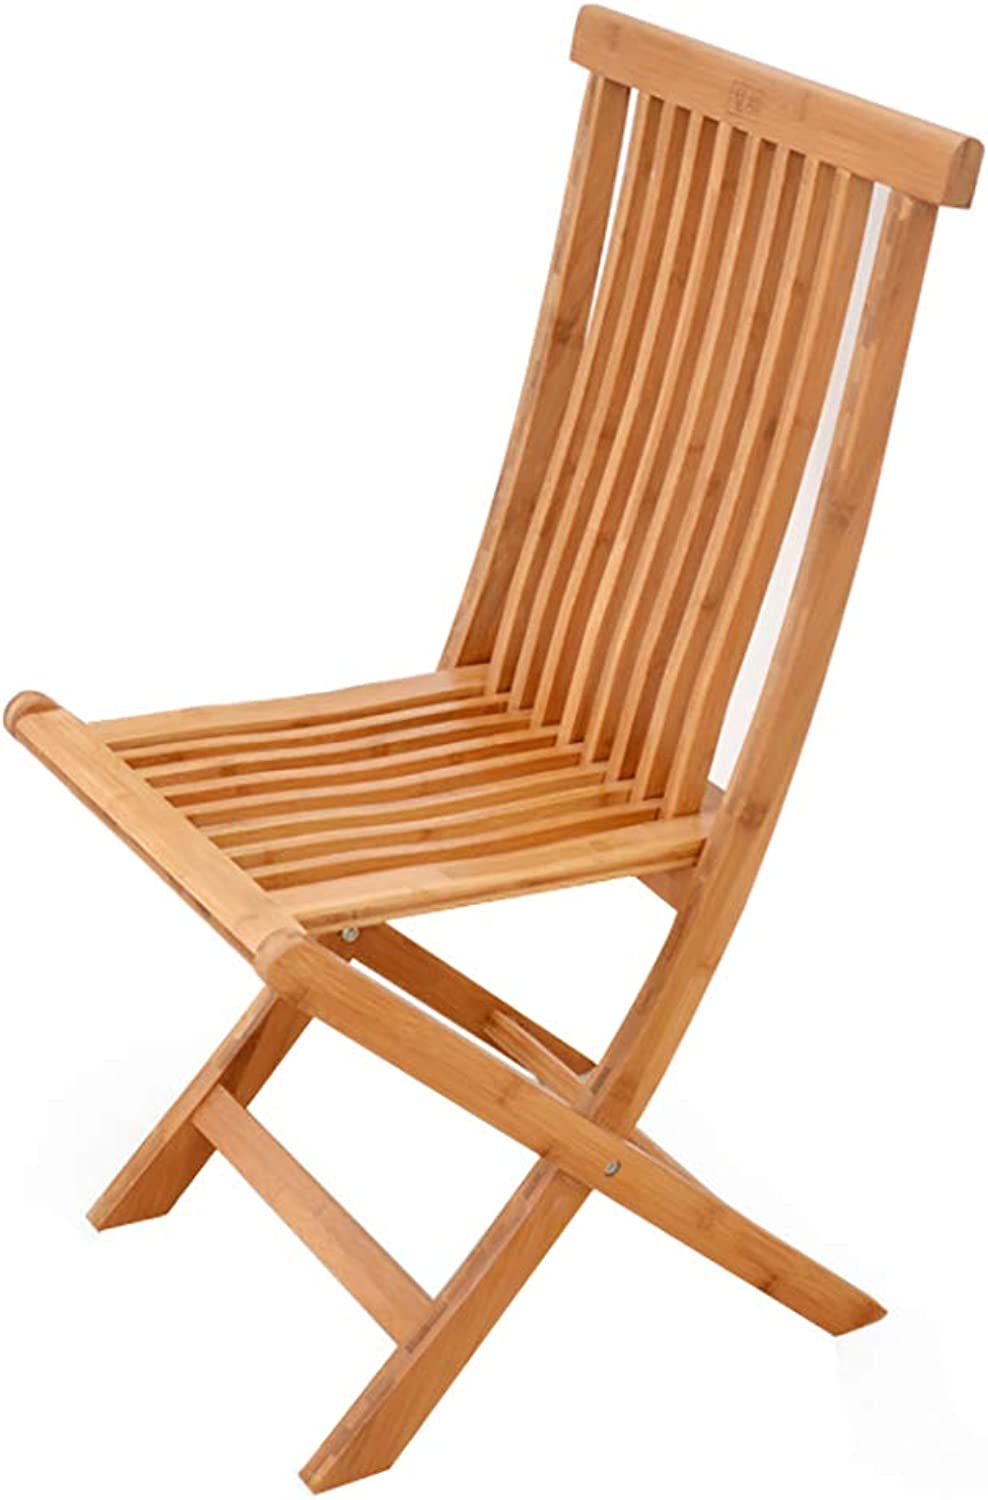 Bamboo Folding Chair Dining Chair Large Medium and Small Portable Bamboo Chair Solid Wood Fishing Chair (Size   35  25  58cm)